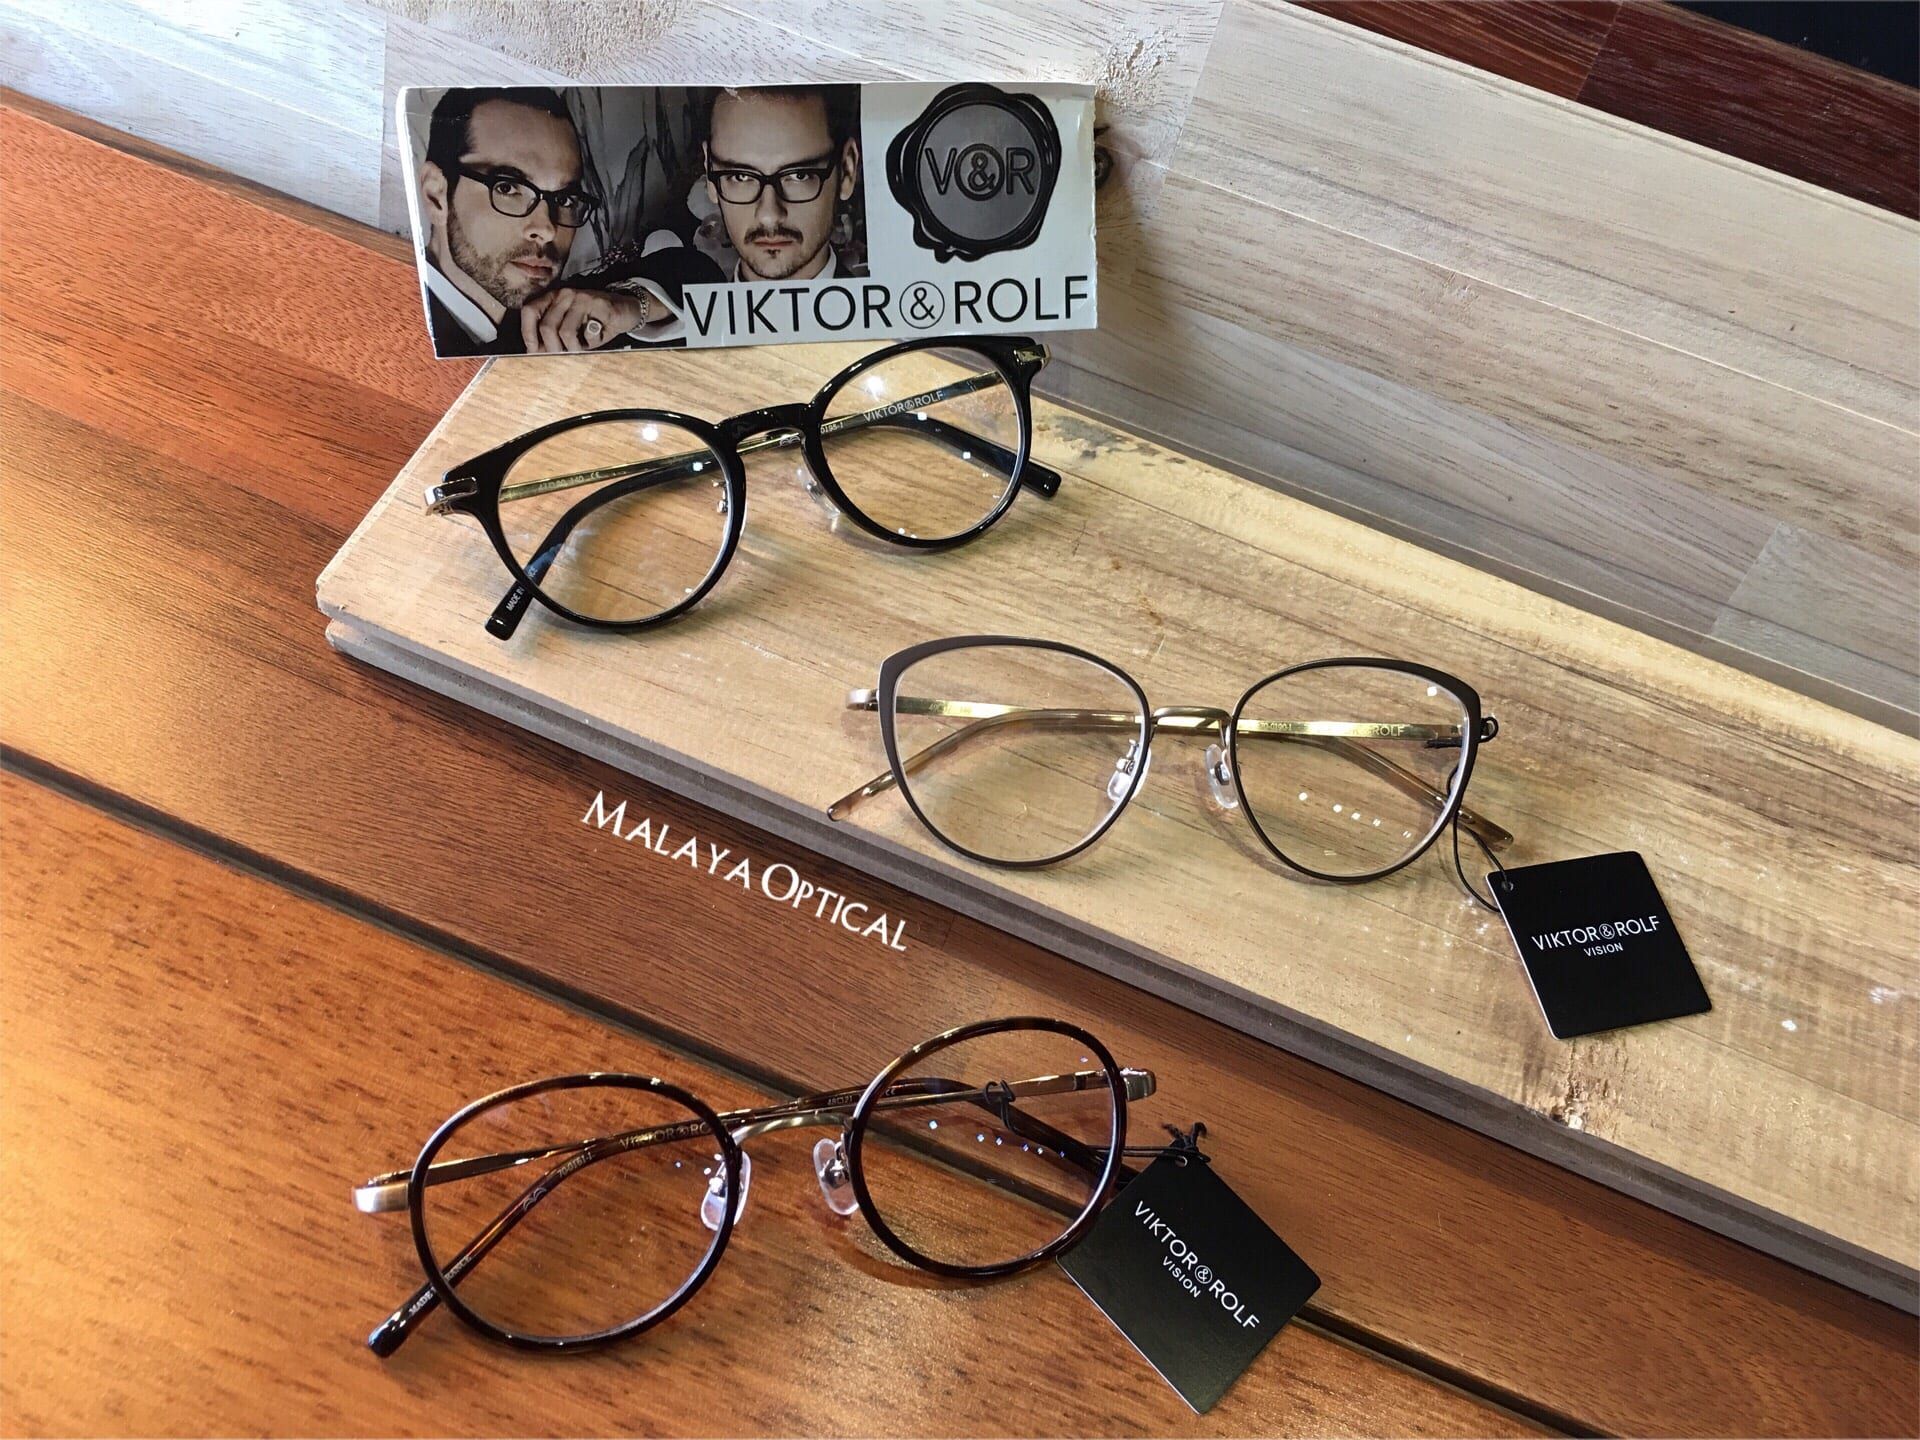 Viktor & Rolf Vision, Viktor & Rolf, Optometrist in Petaling Jaya | Optical Shop